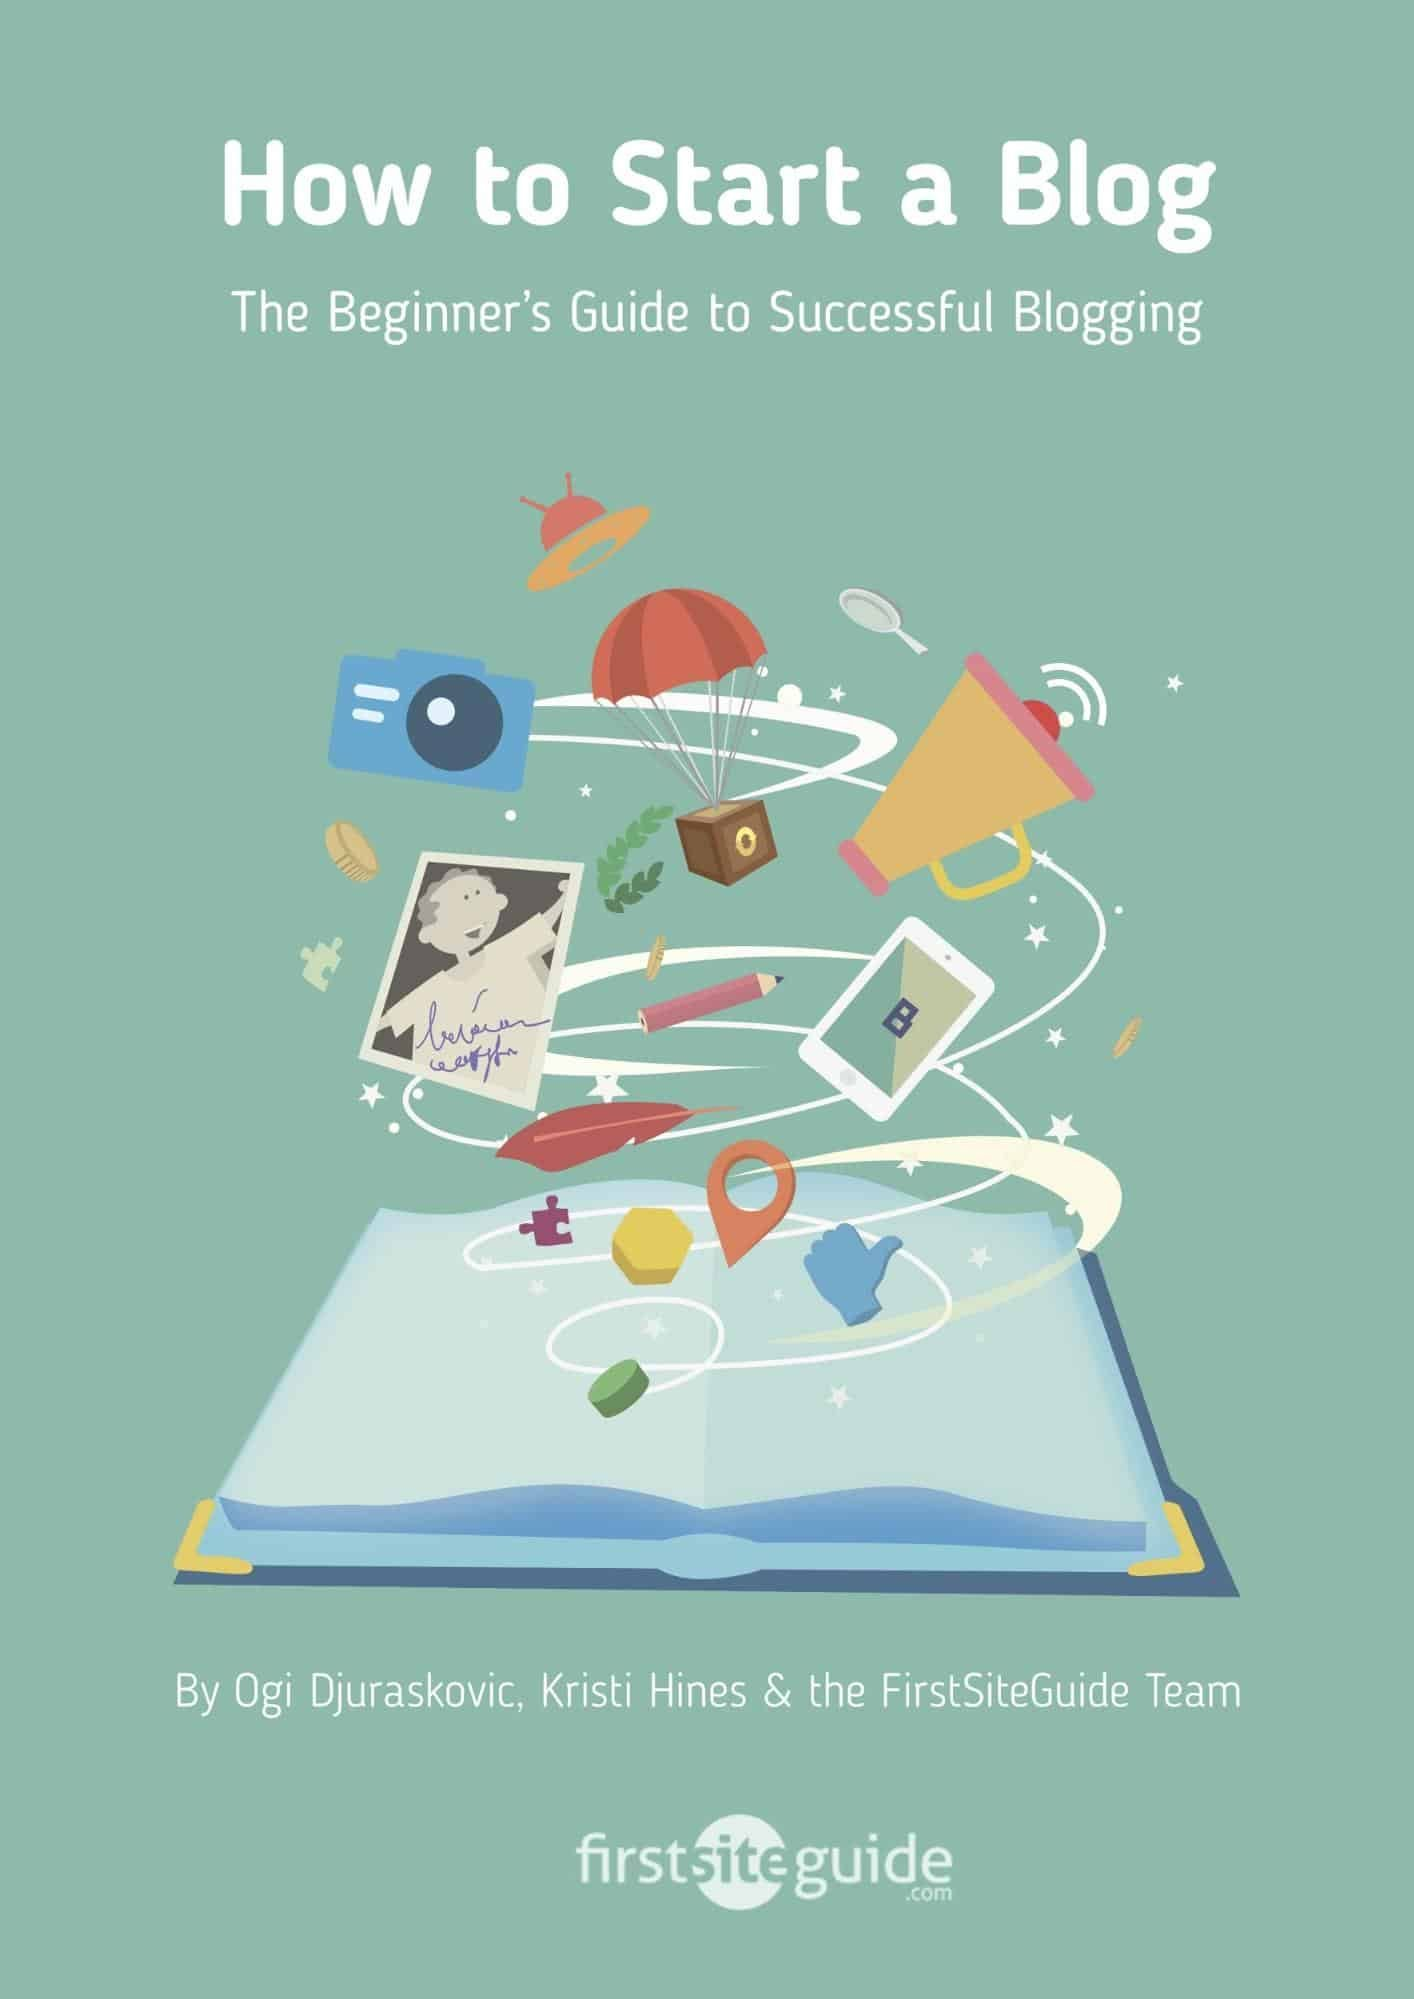 how to start a blog free ebook, free ebook example